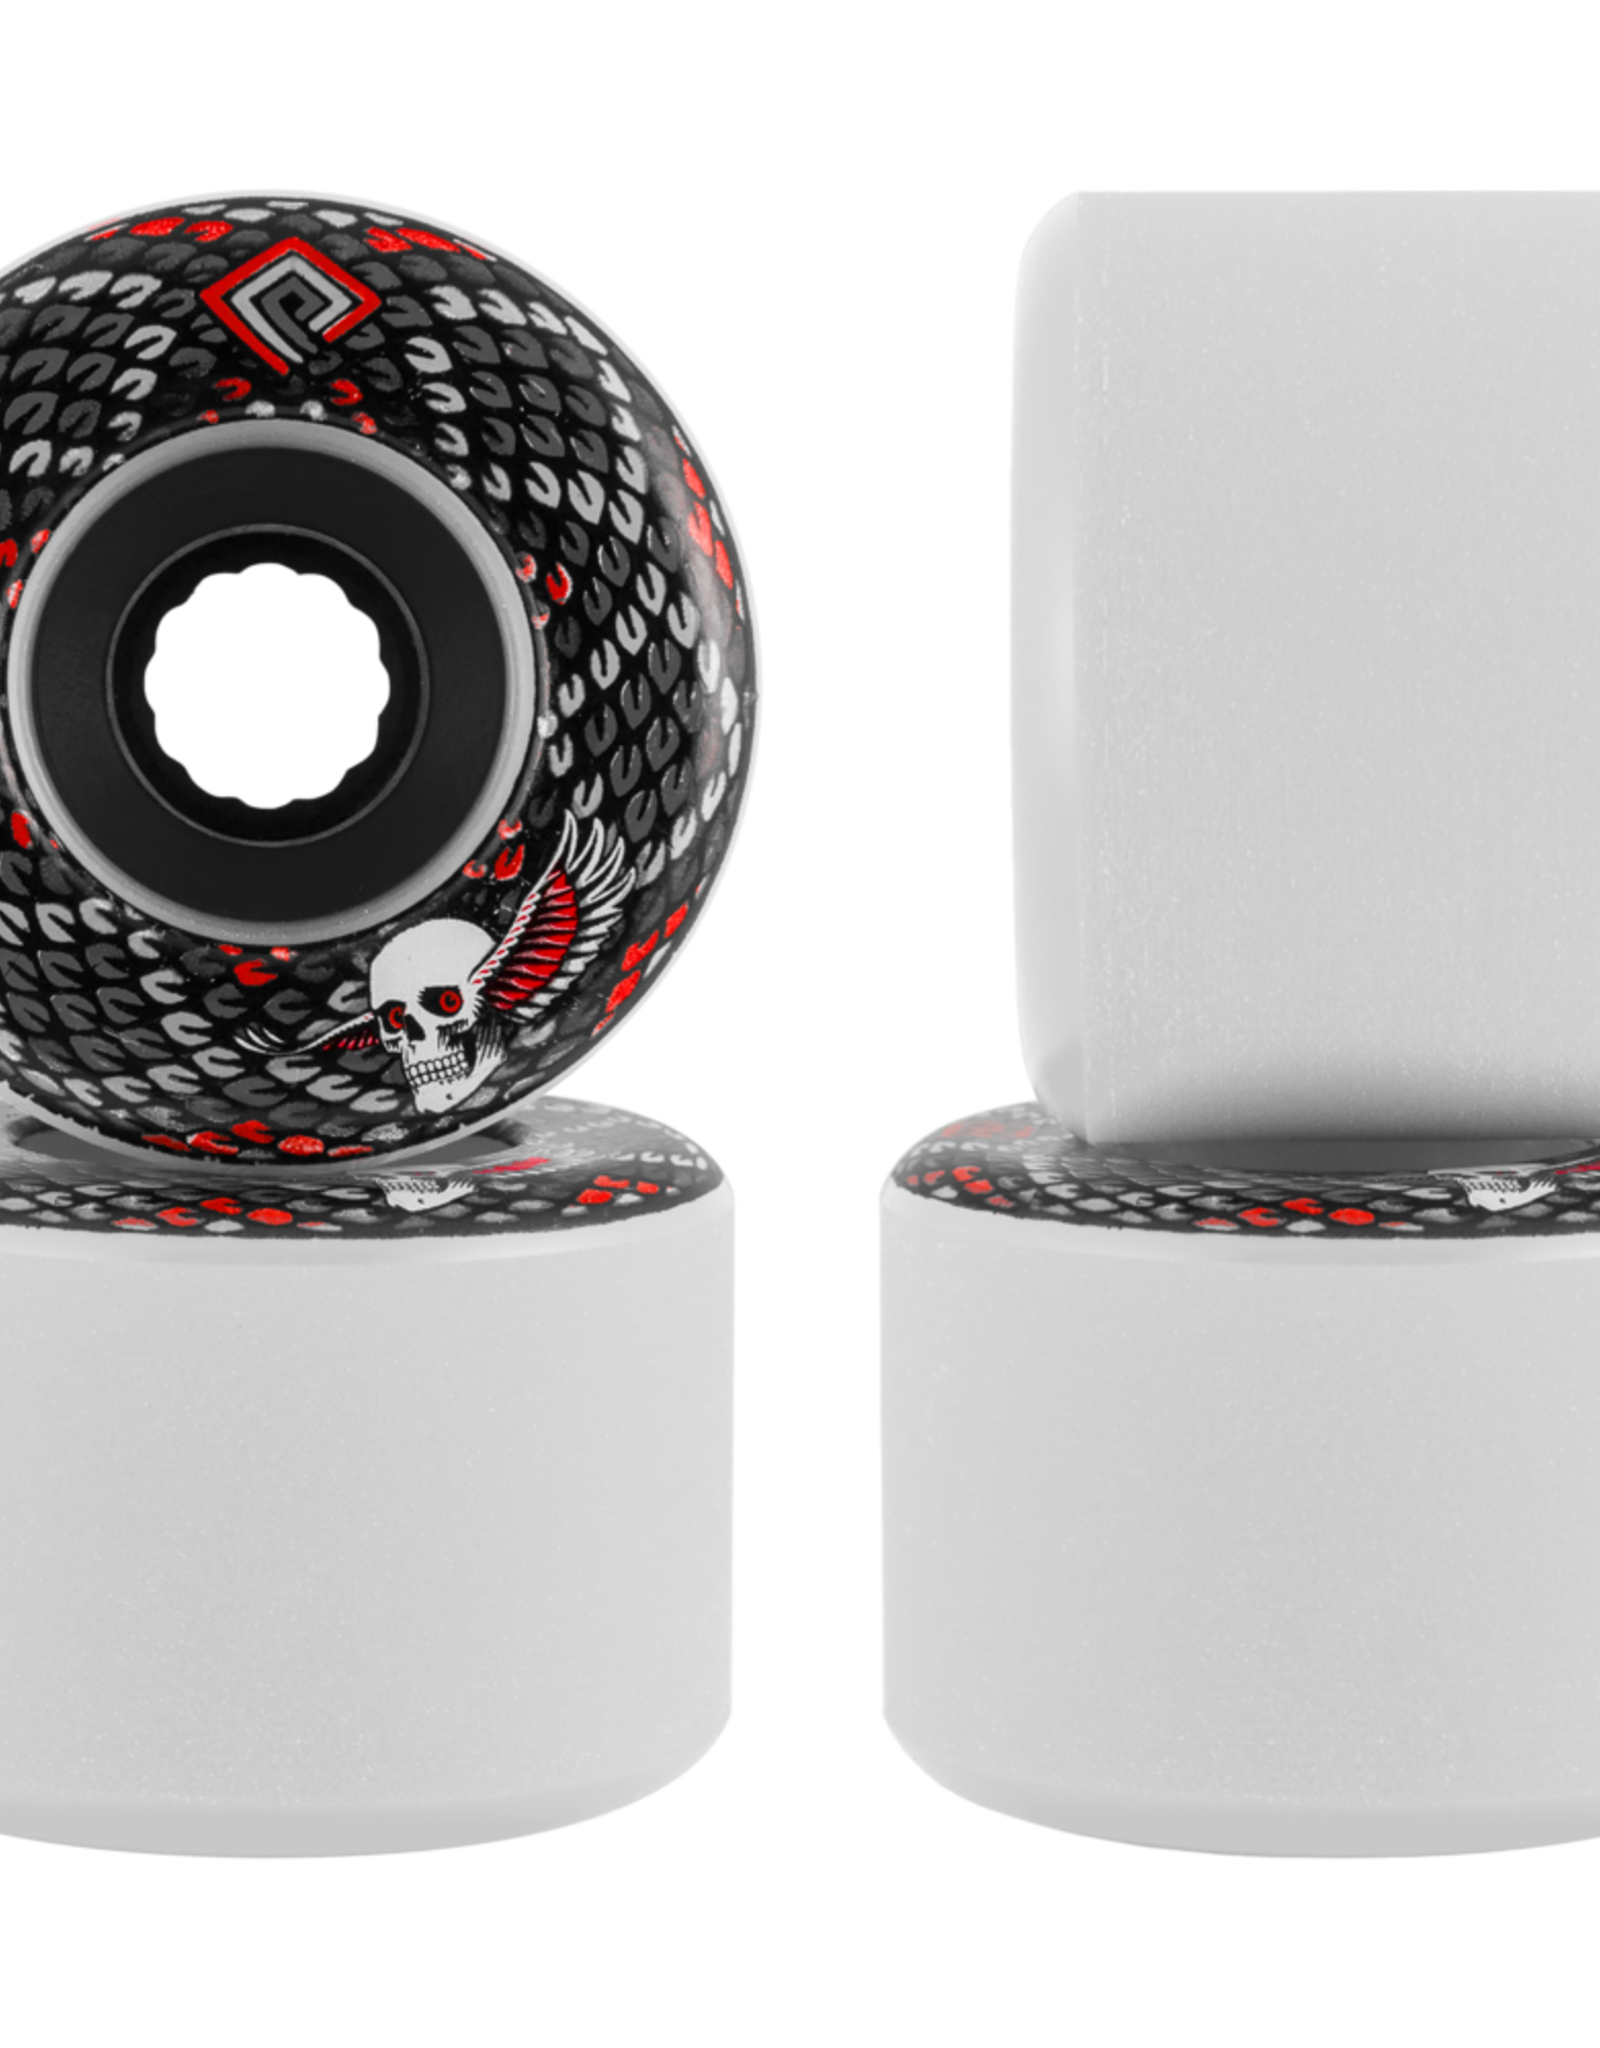 POWELL POWELL SNAKES WHEELS 69MM 78A WHITE